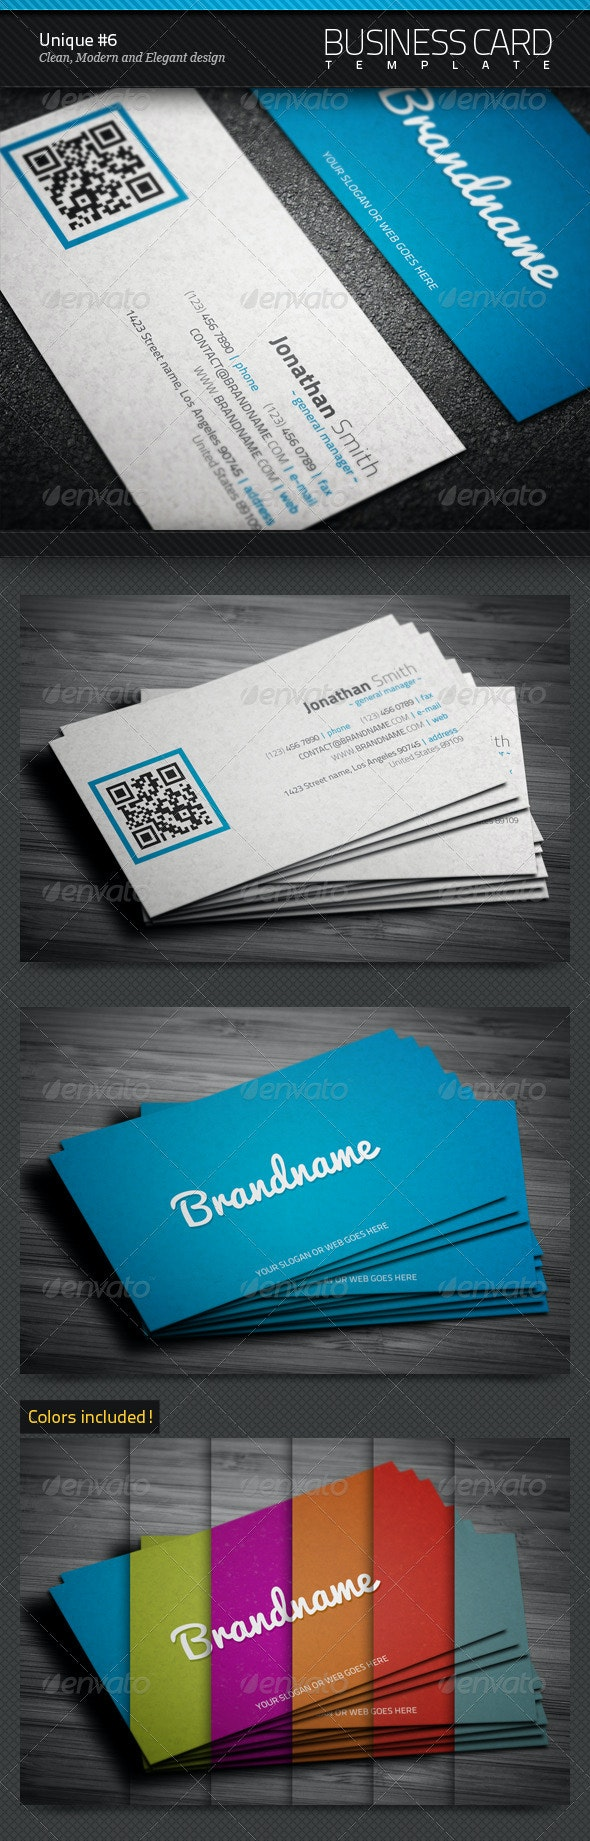 Unique Business Card #6 - Corporate Business Cards